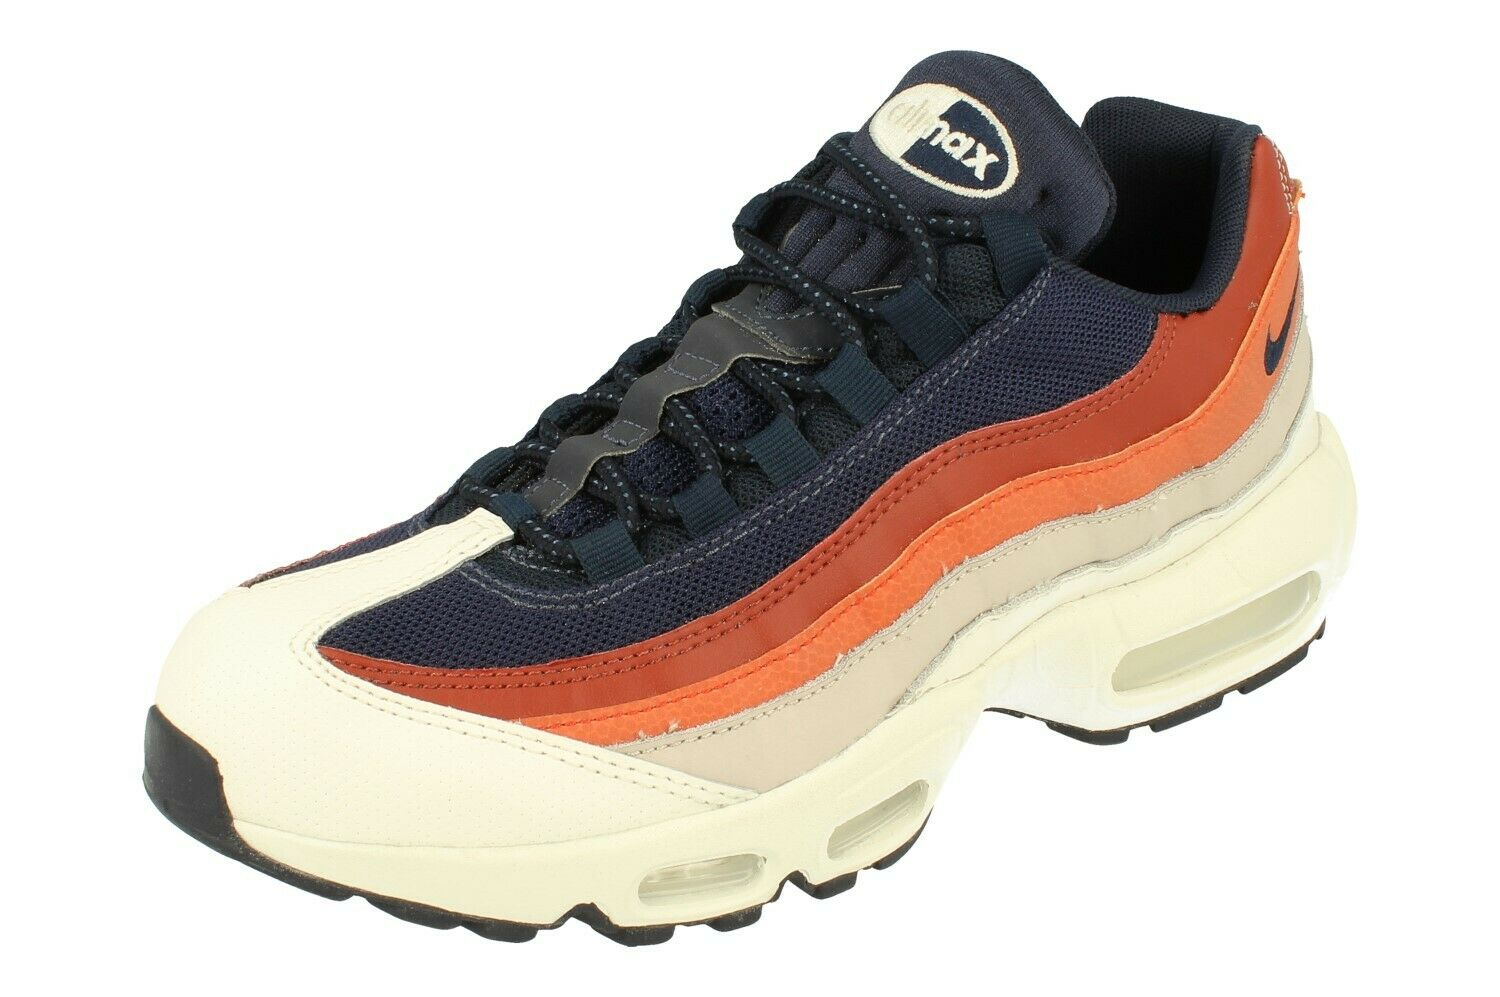 Nike Air Max 95 Essential Mens Running Trainers 749766 Sneakers shoes 108